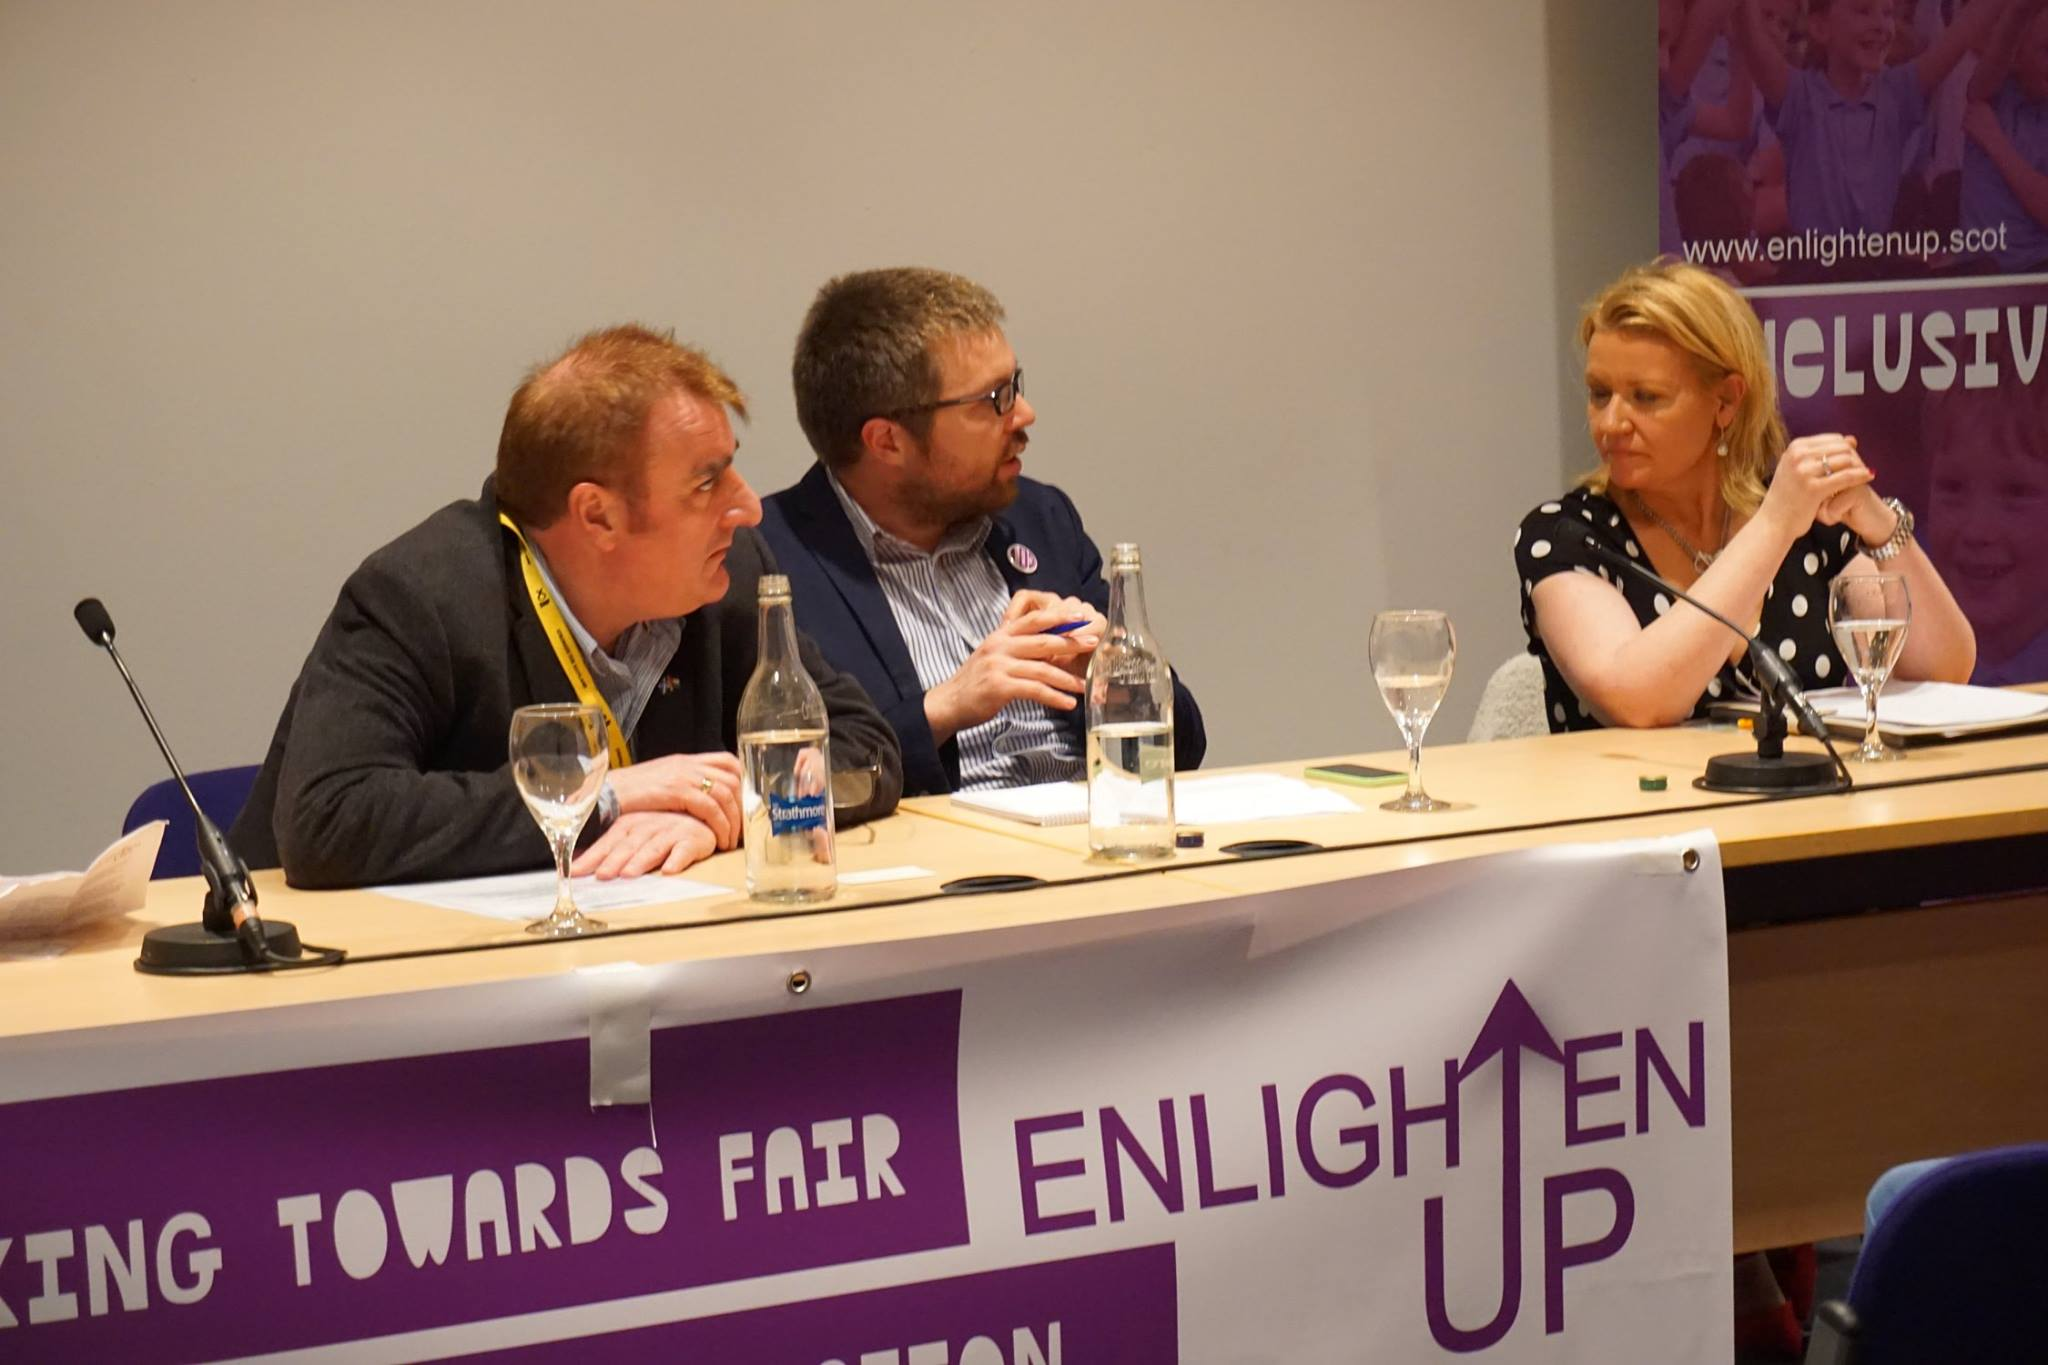 Tommy Sheppard (far left) moderates the panel discussion